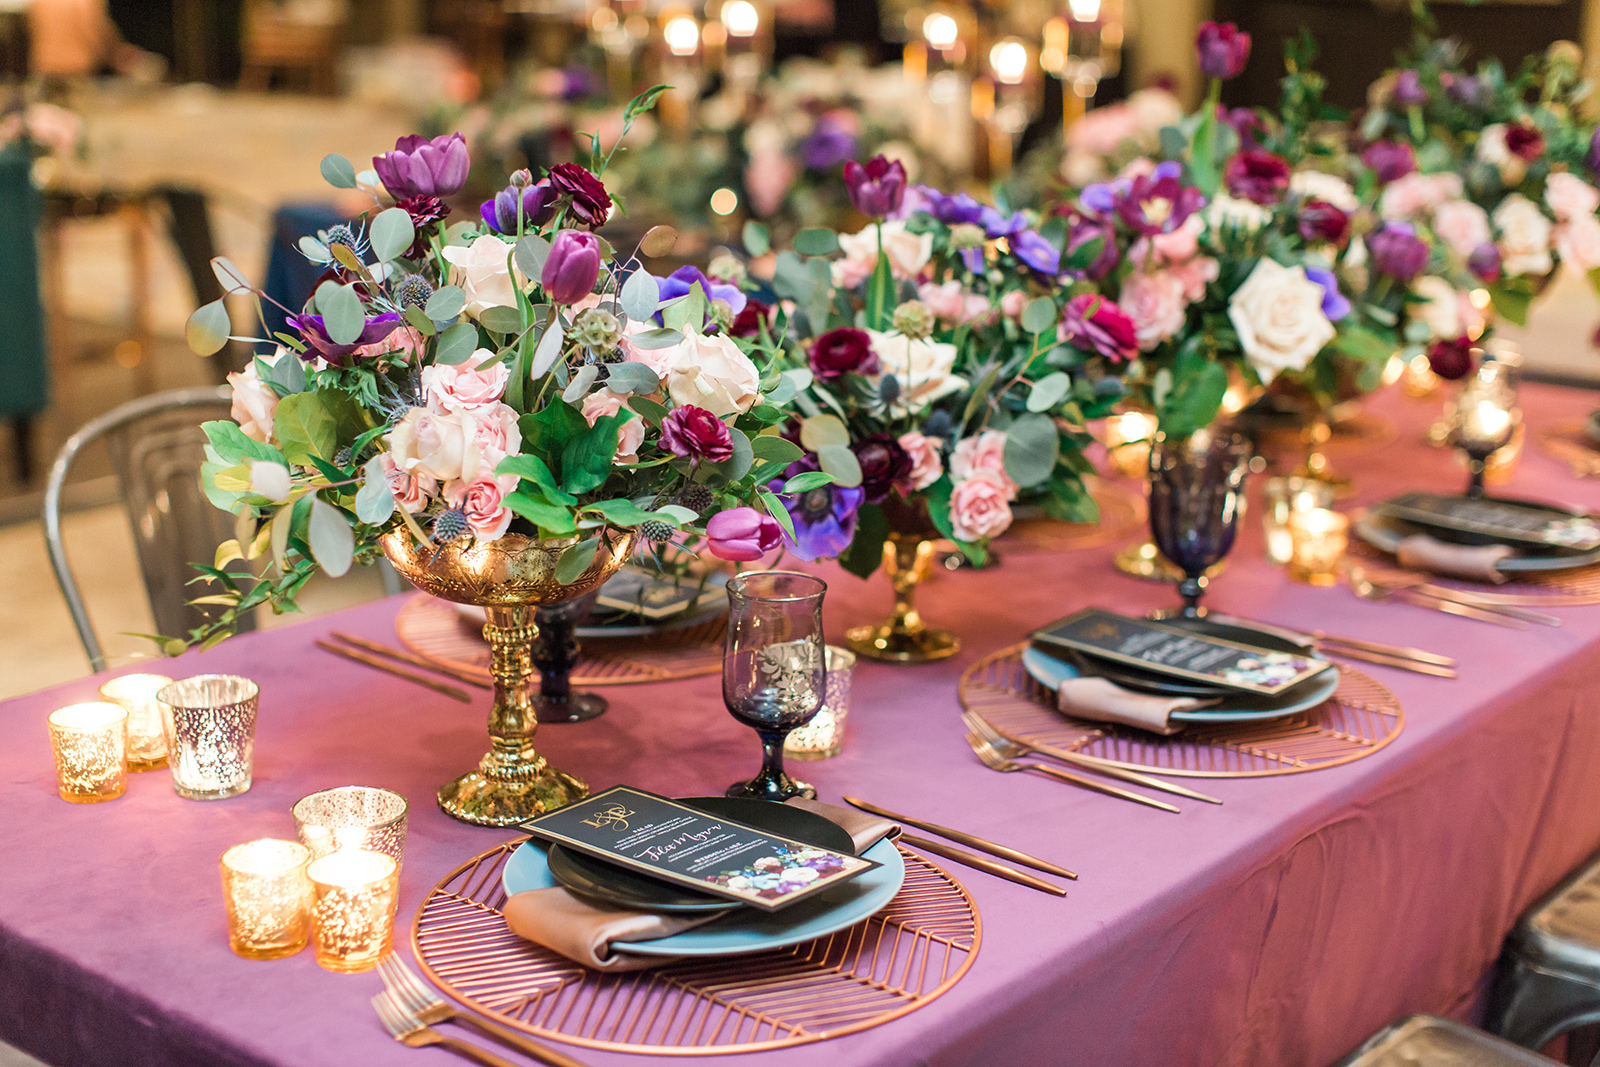 Jewel Tones Mixed With Metal Touches